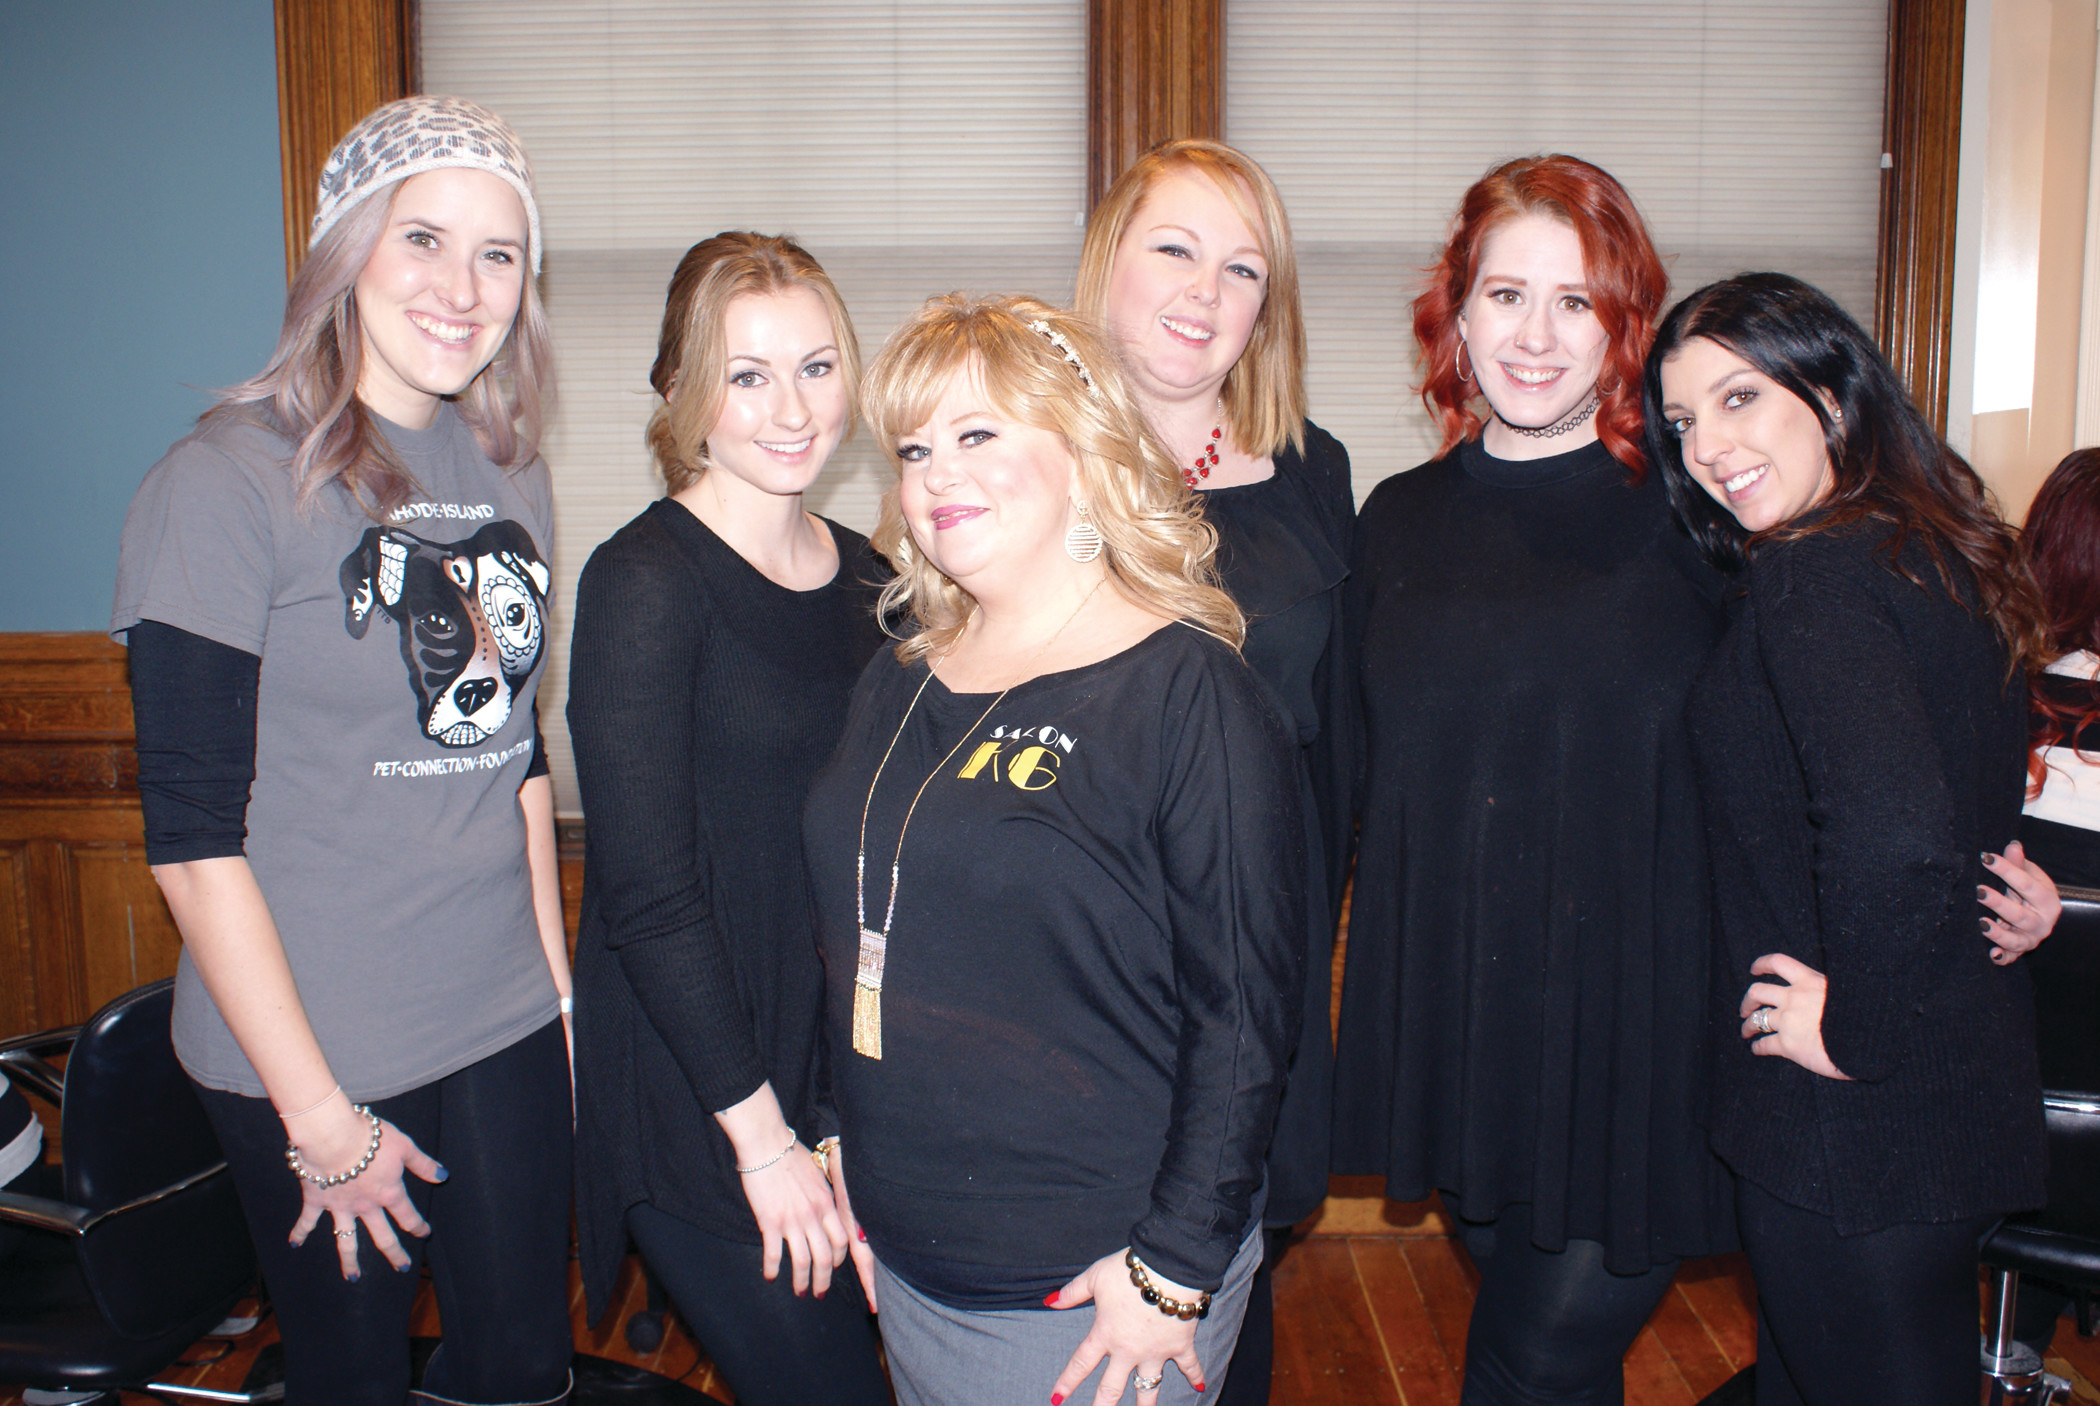 FOR A GOOD CAUSE: From left to right, Ashley Dietrick, Molly Cartier, Salon KG owner Kristin Greene, Alison Greene, Laura Philbrick and Karen Croce all volunteered their time on Sunday.